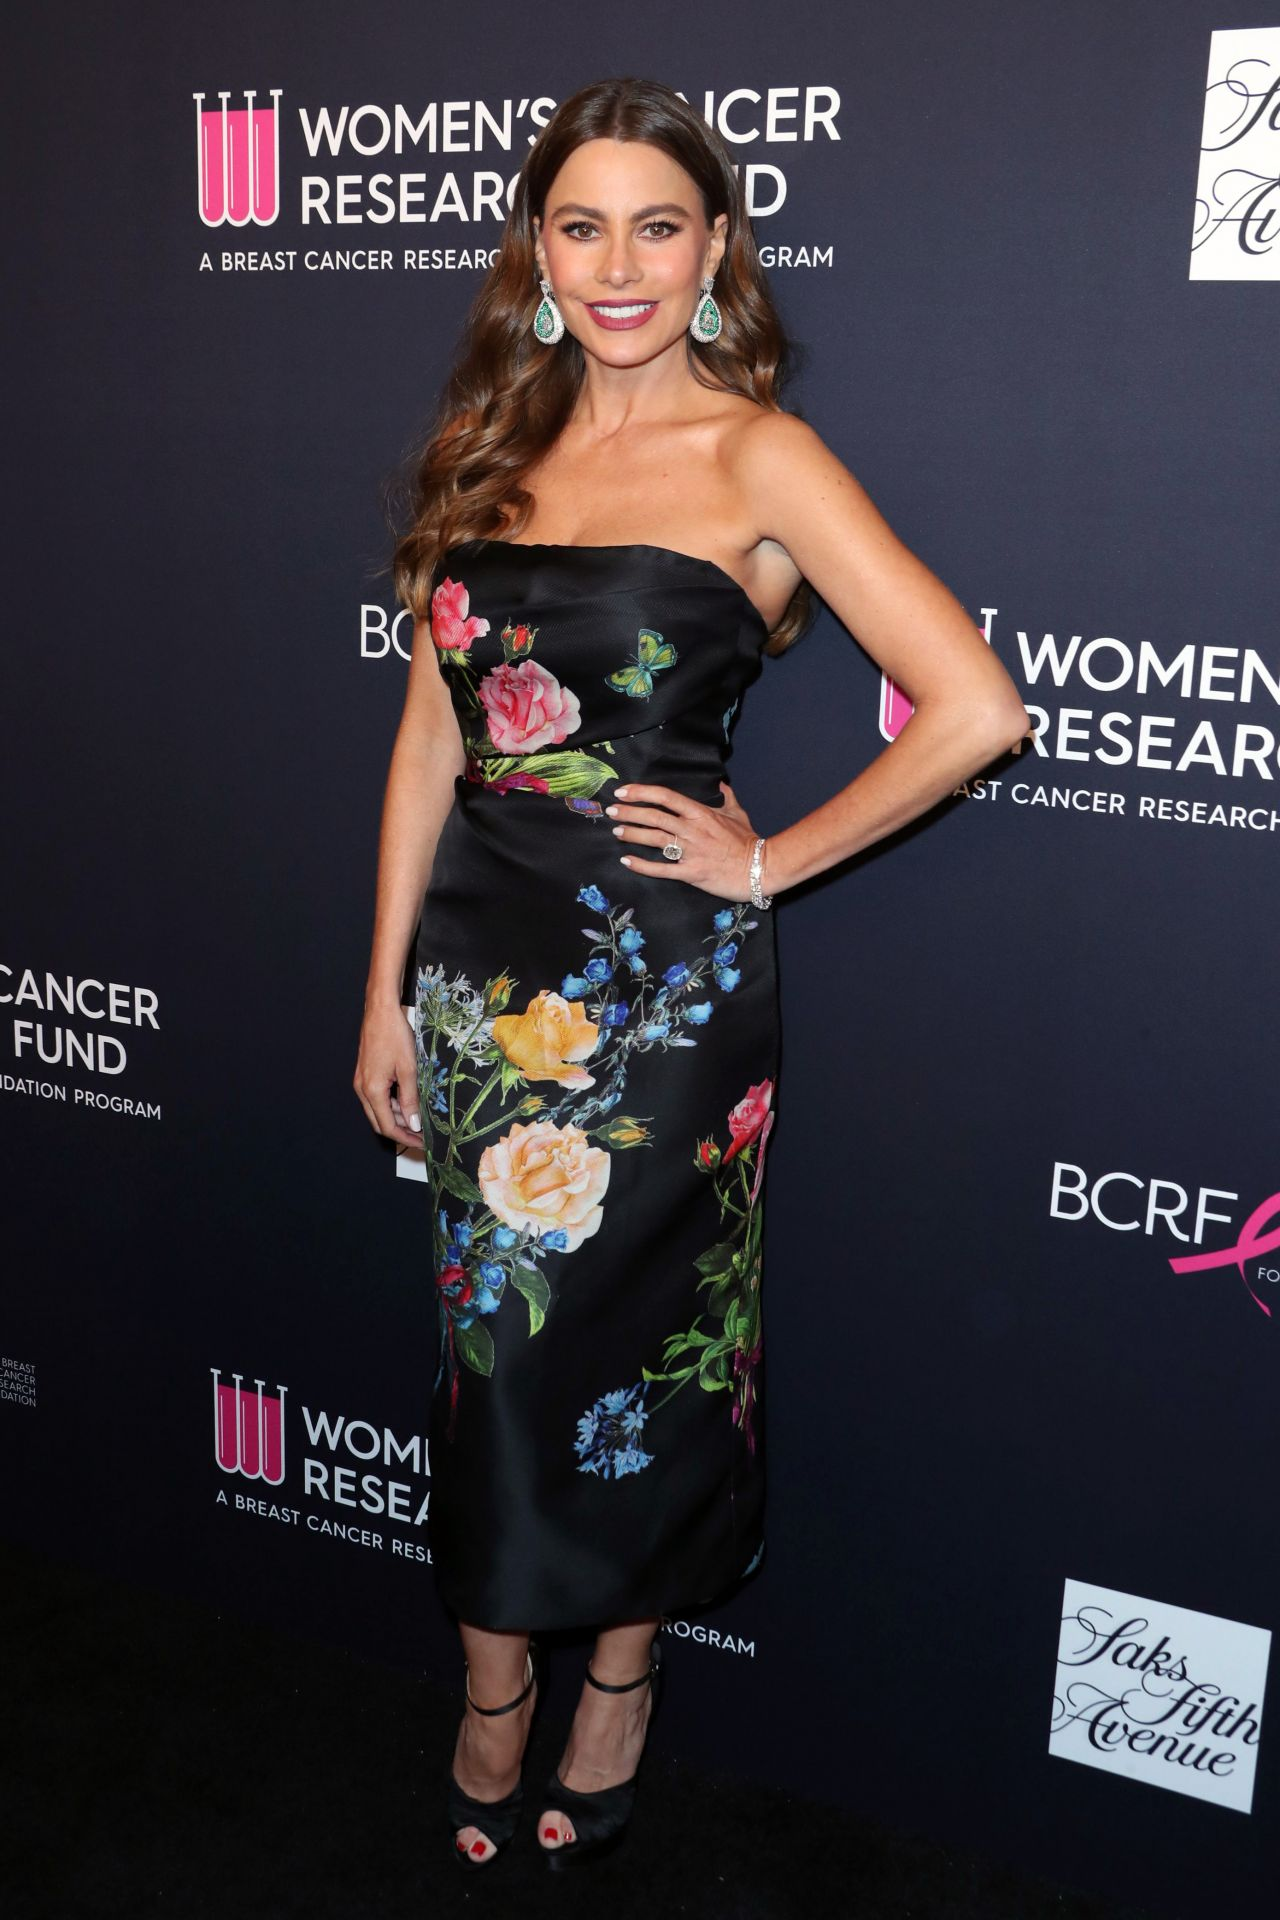 http://celebmafia.com/wp-content/uploads/2018/02/sofia-vergara-the-womens-cancer-research-fund-hosts-an-unforgettable-evening-in-la-02-27-2018-8.jpg